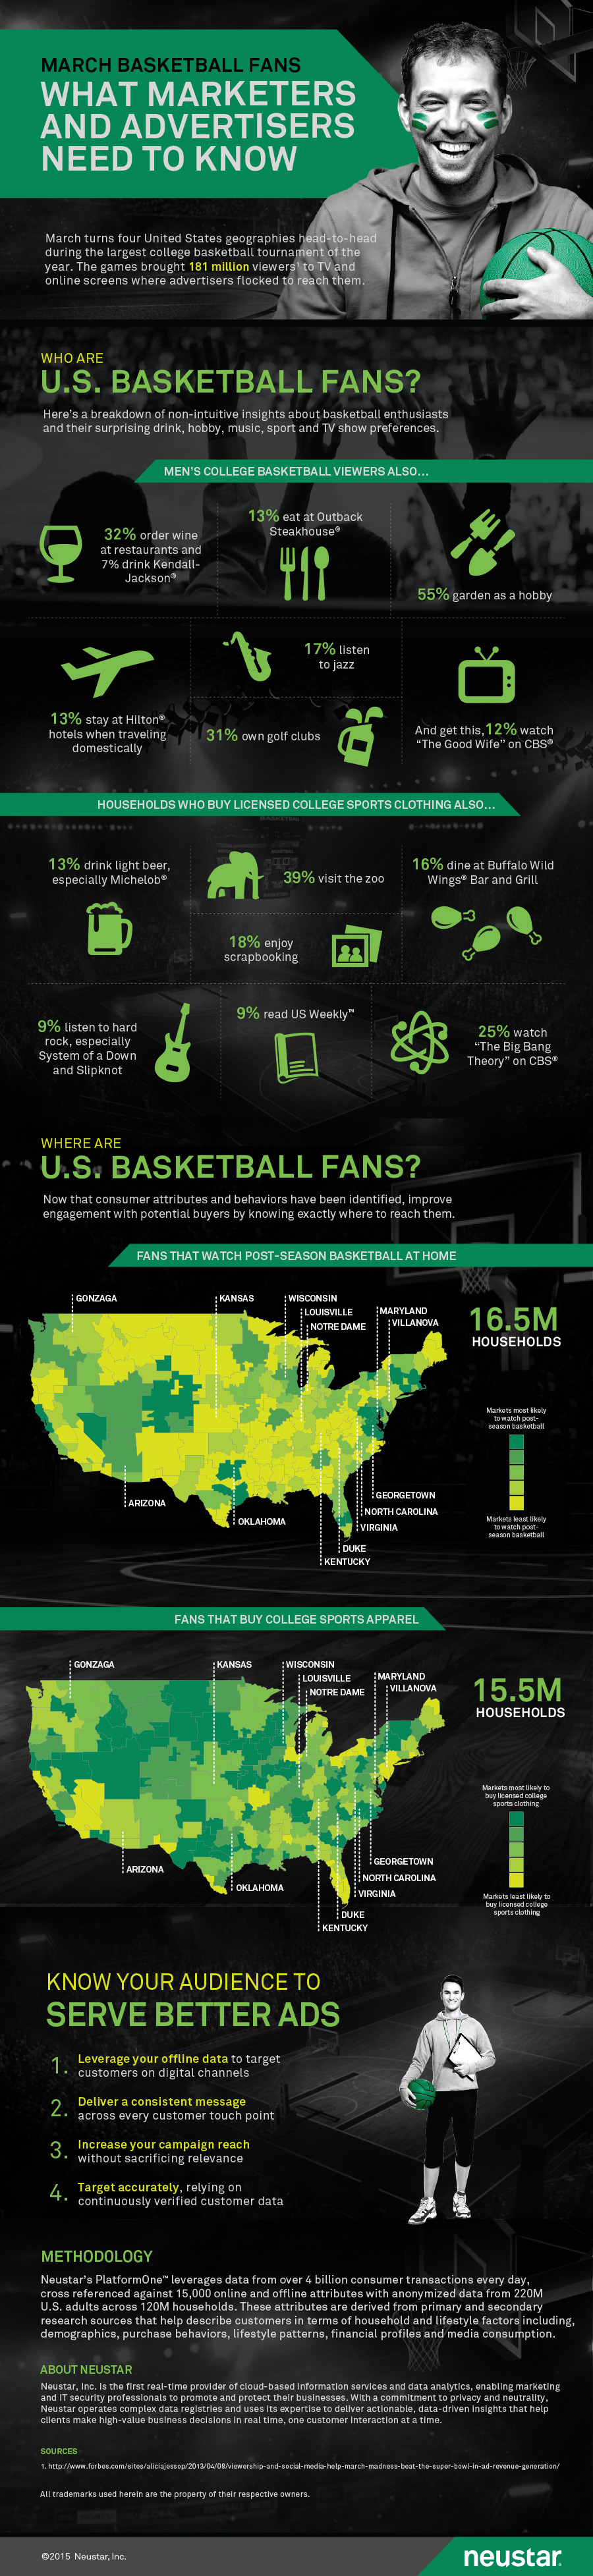 Basketball Fans Infographic 2015